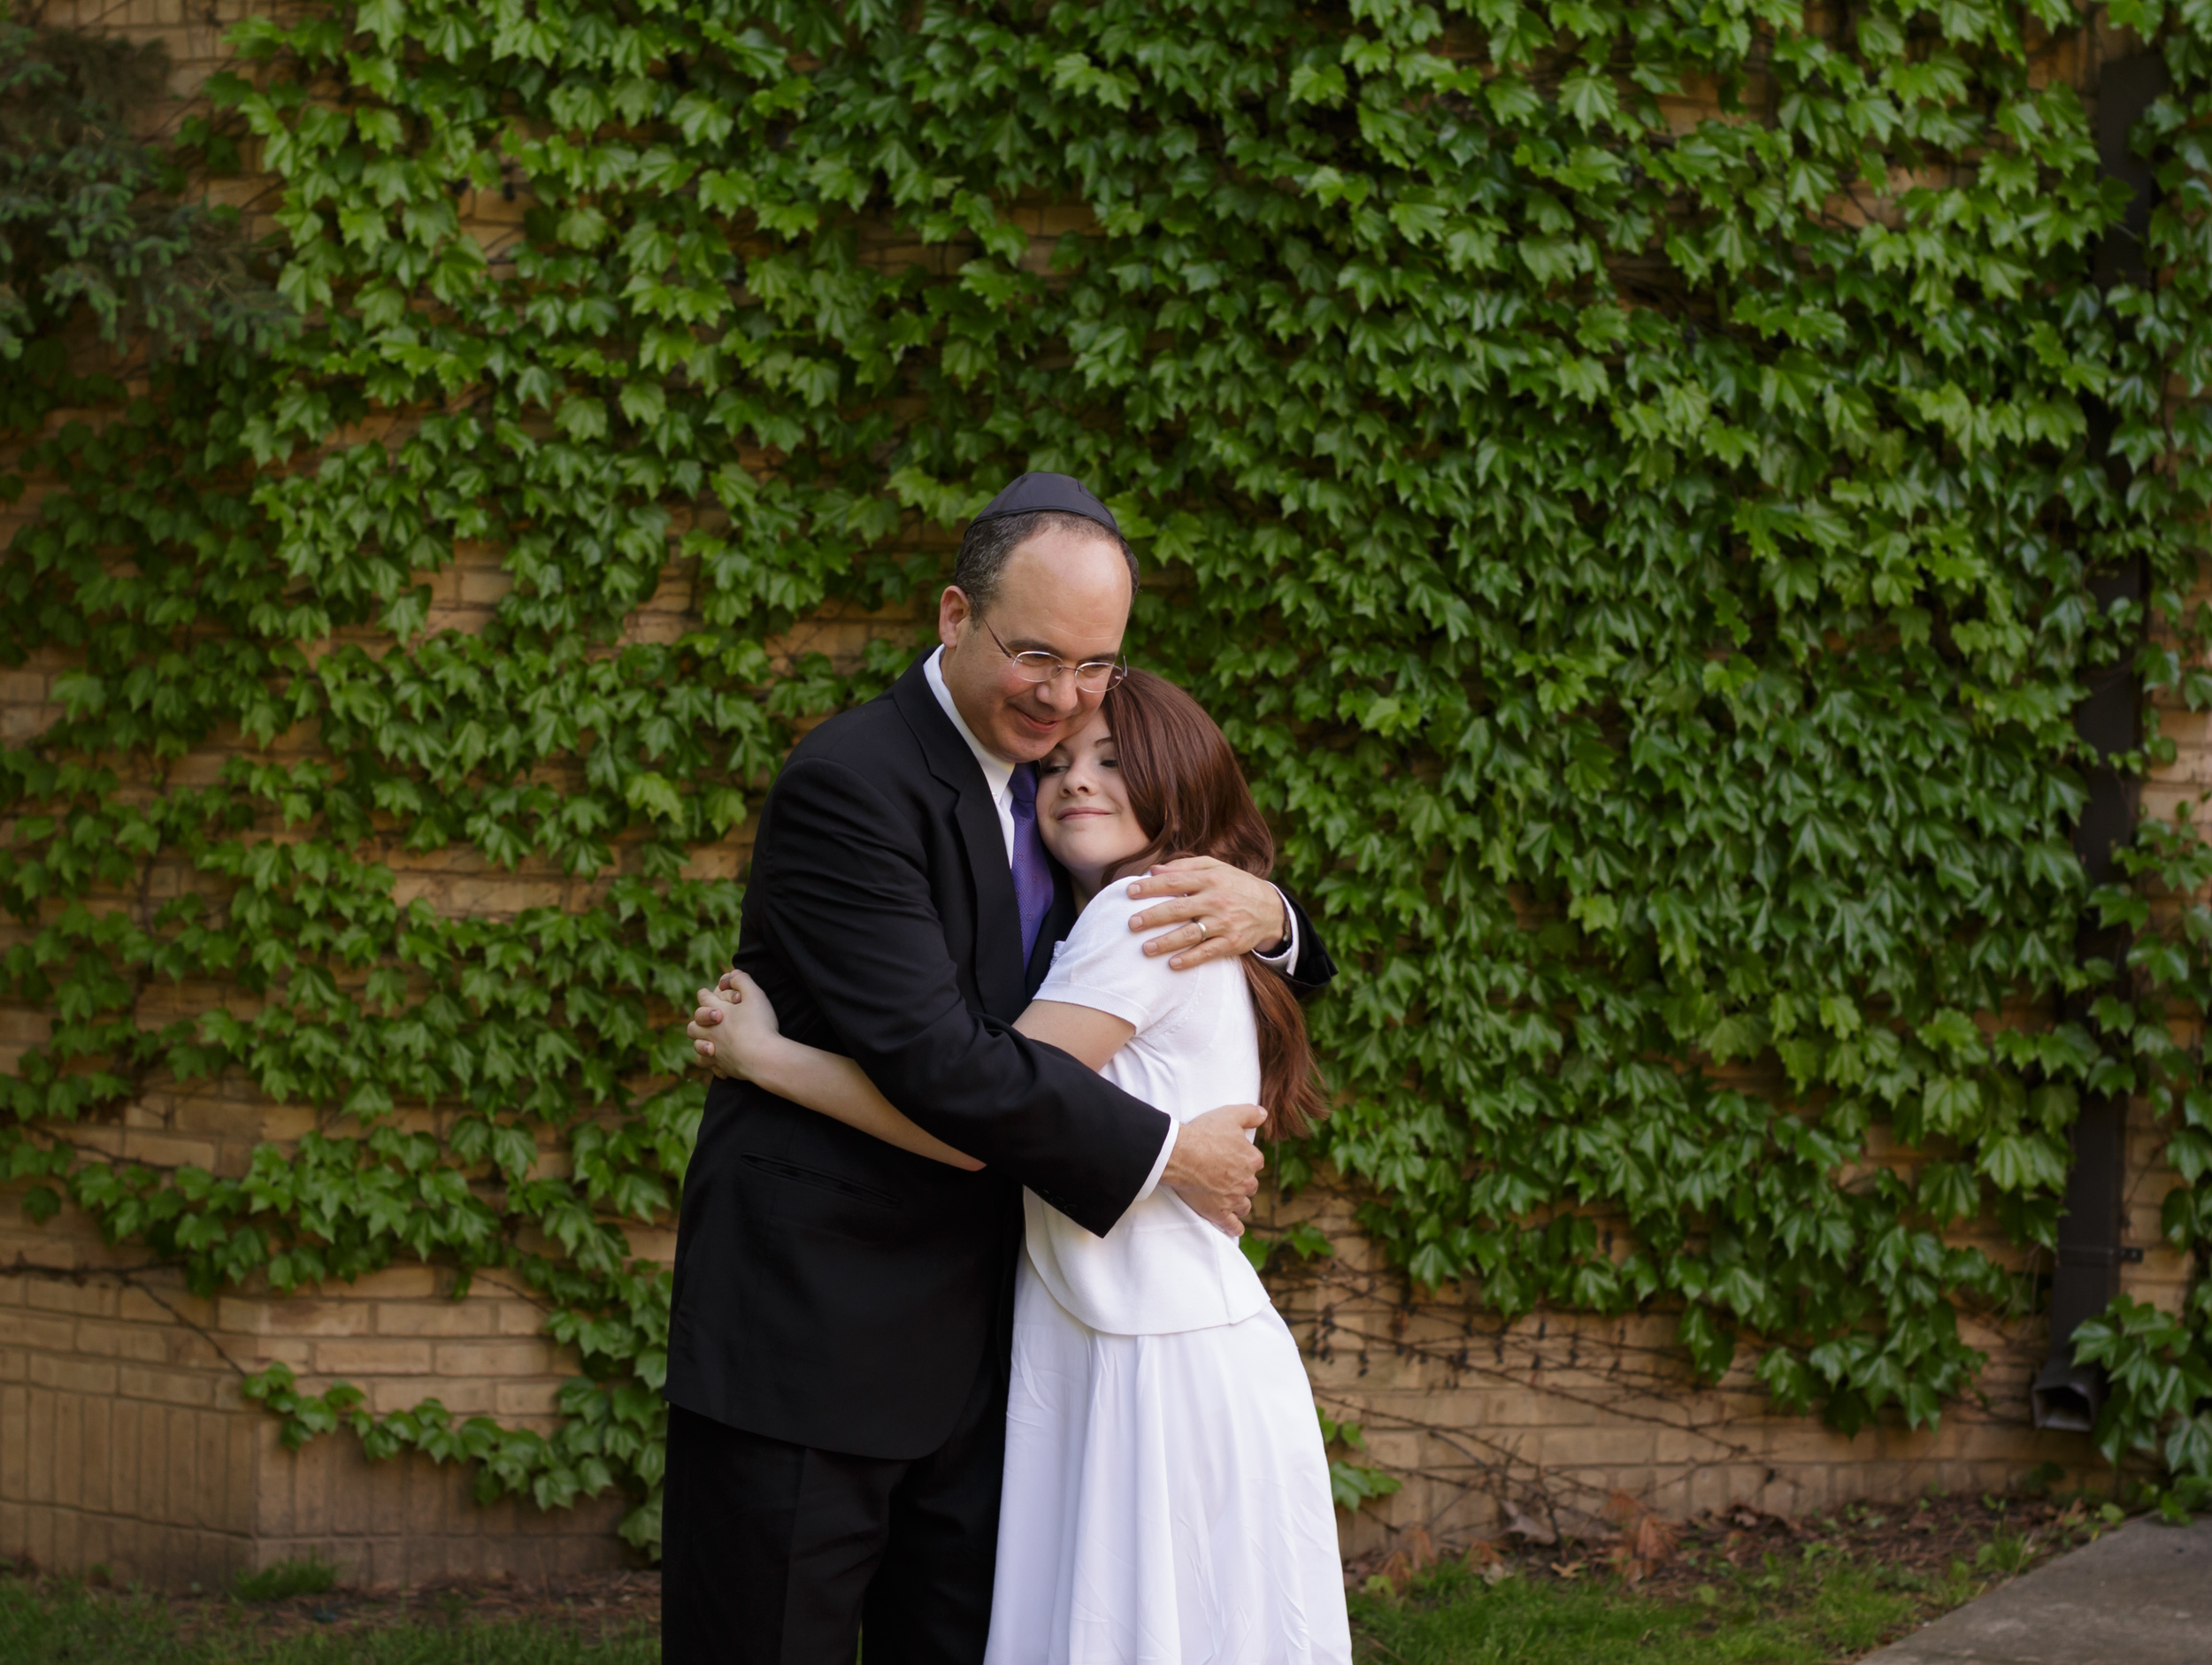 Lily_Ann_Arbor_Bat_Mitzvah_photography_06